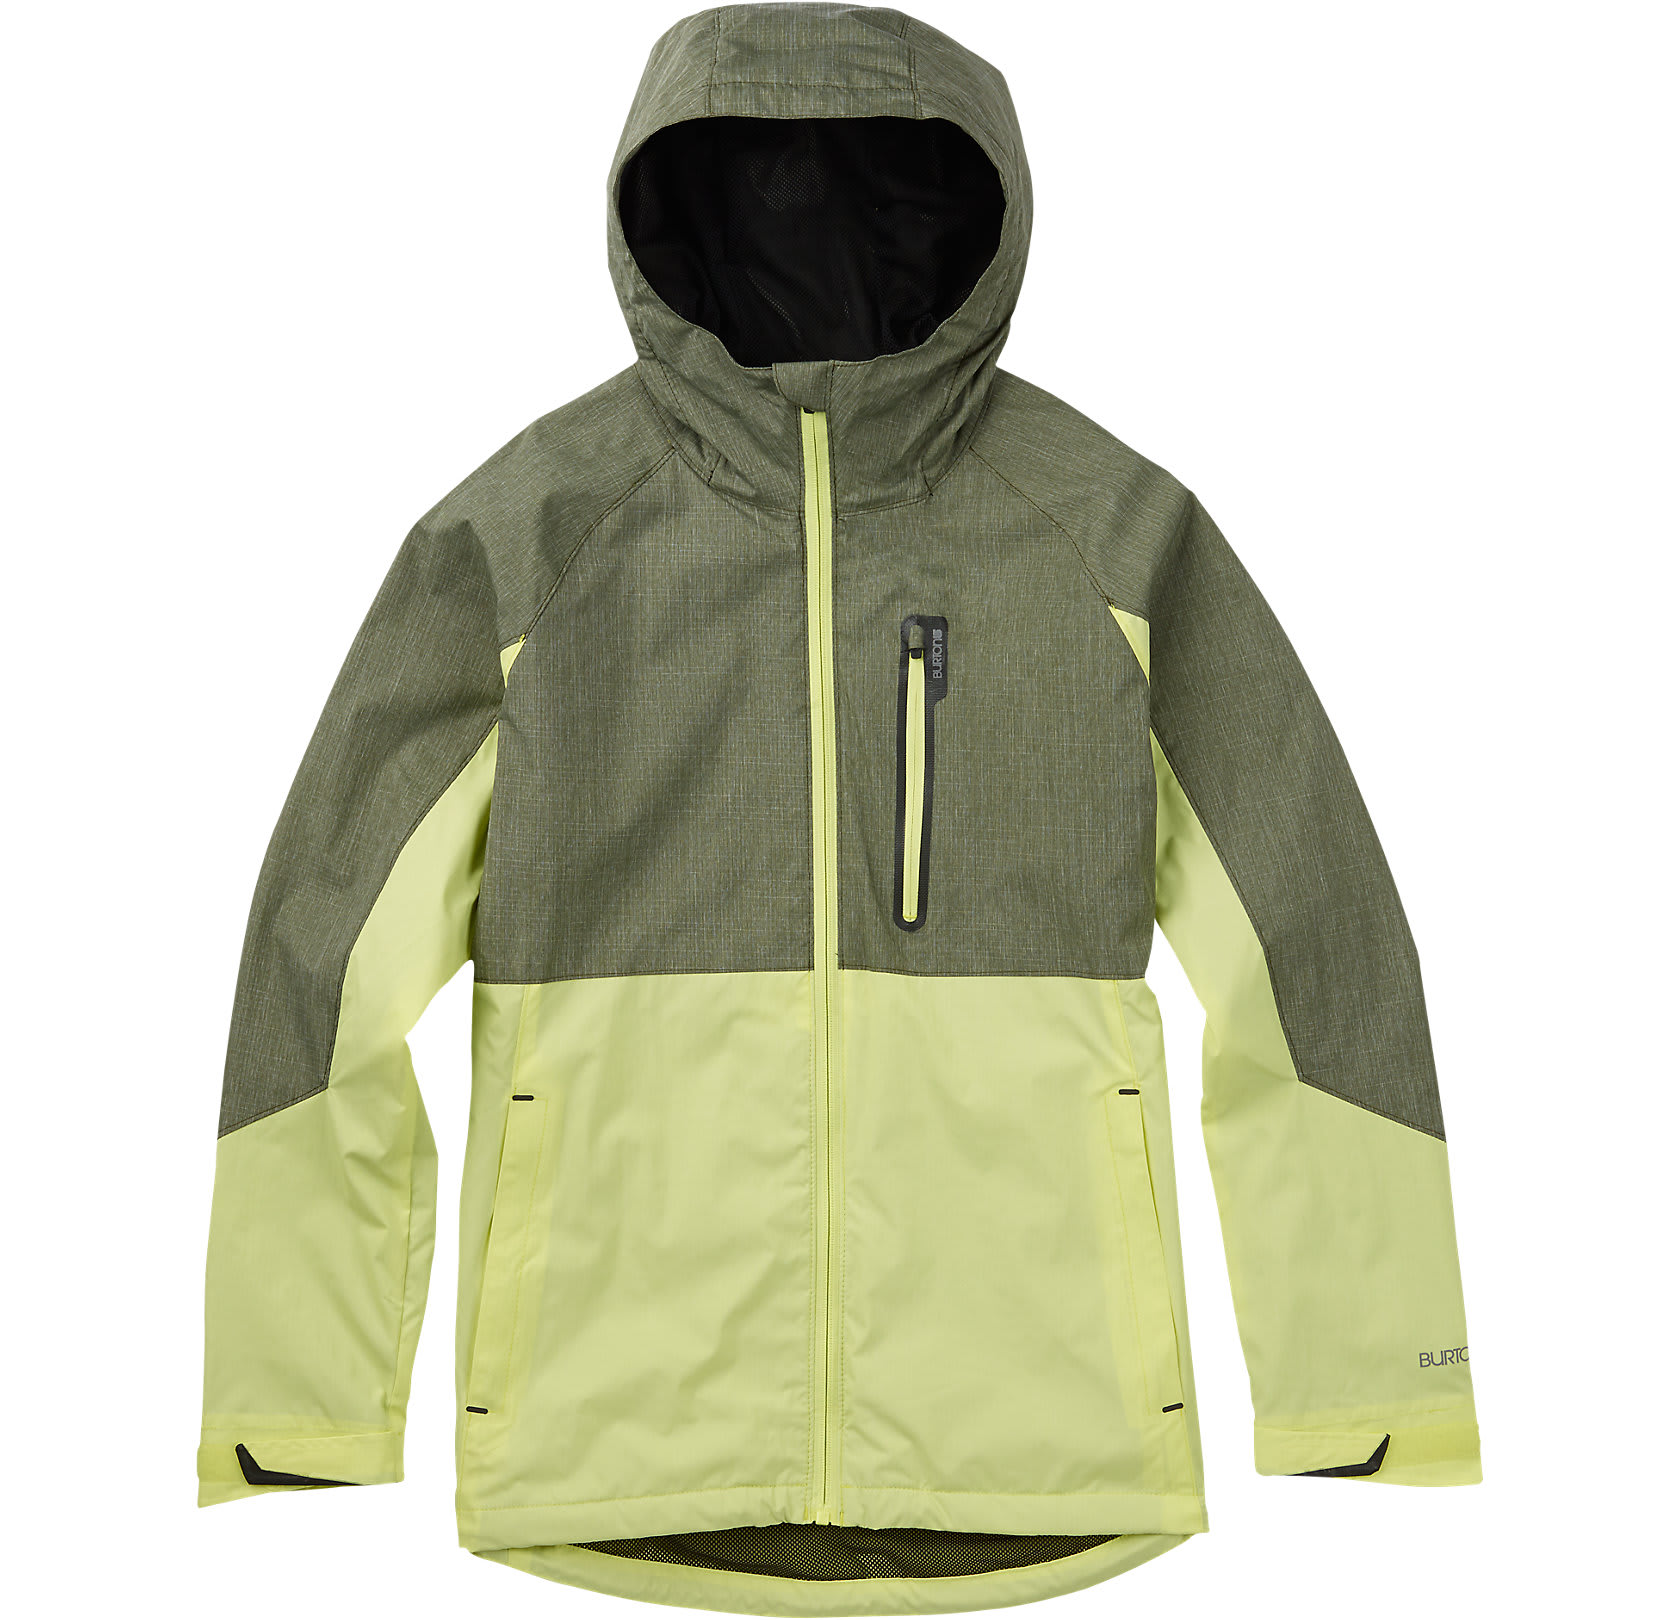 On Sale Burton Berkley Rain Jacket - Womens up to 40% off